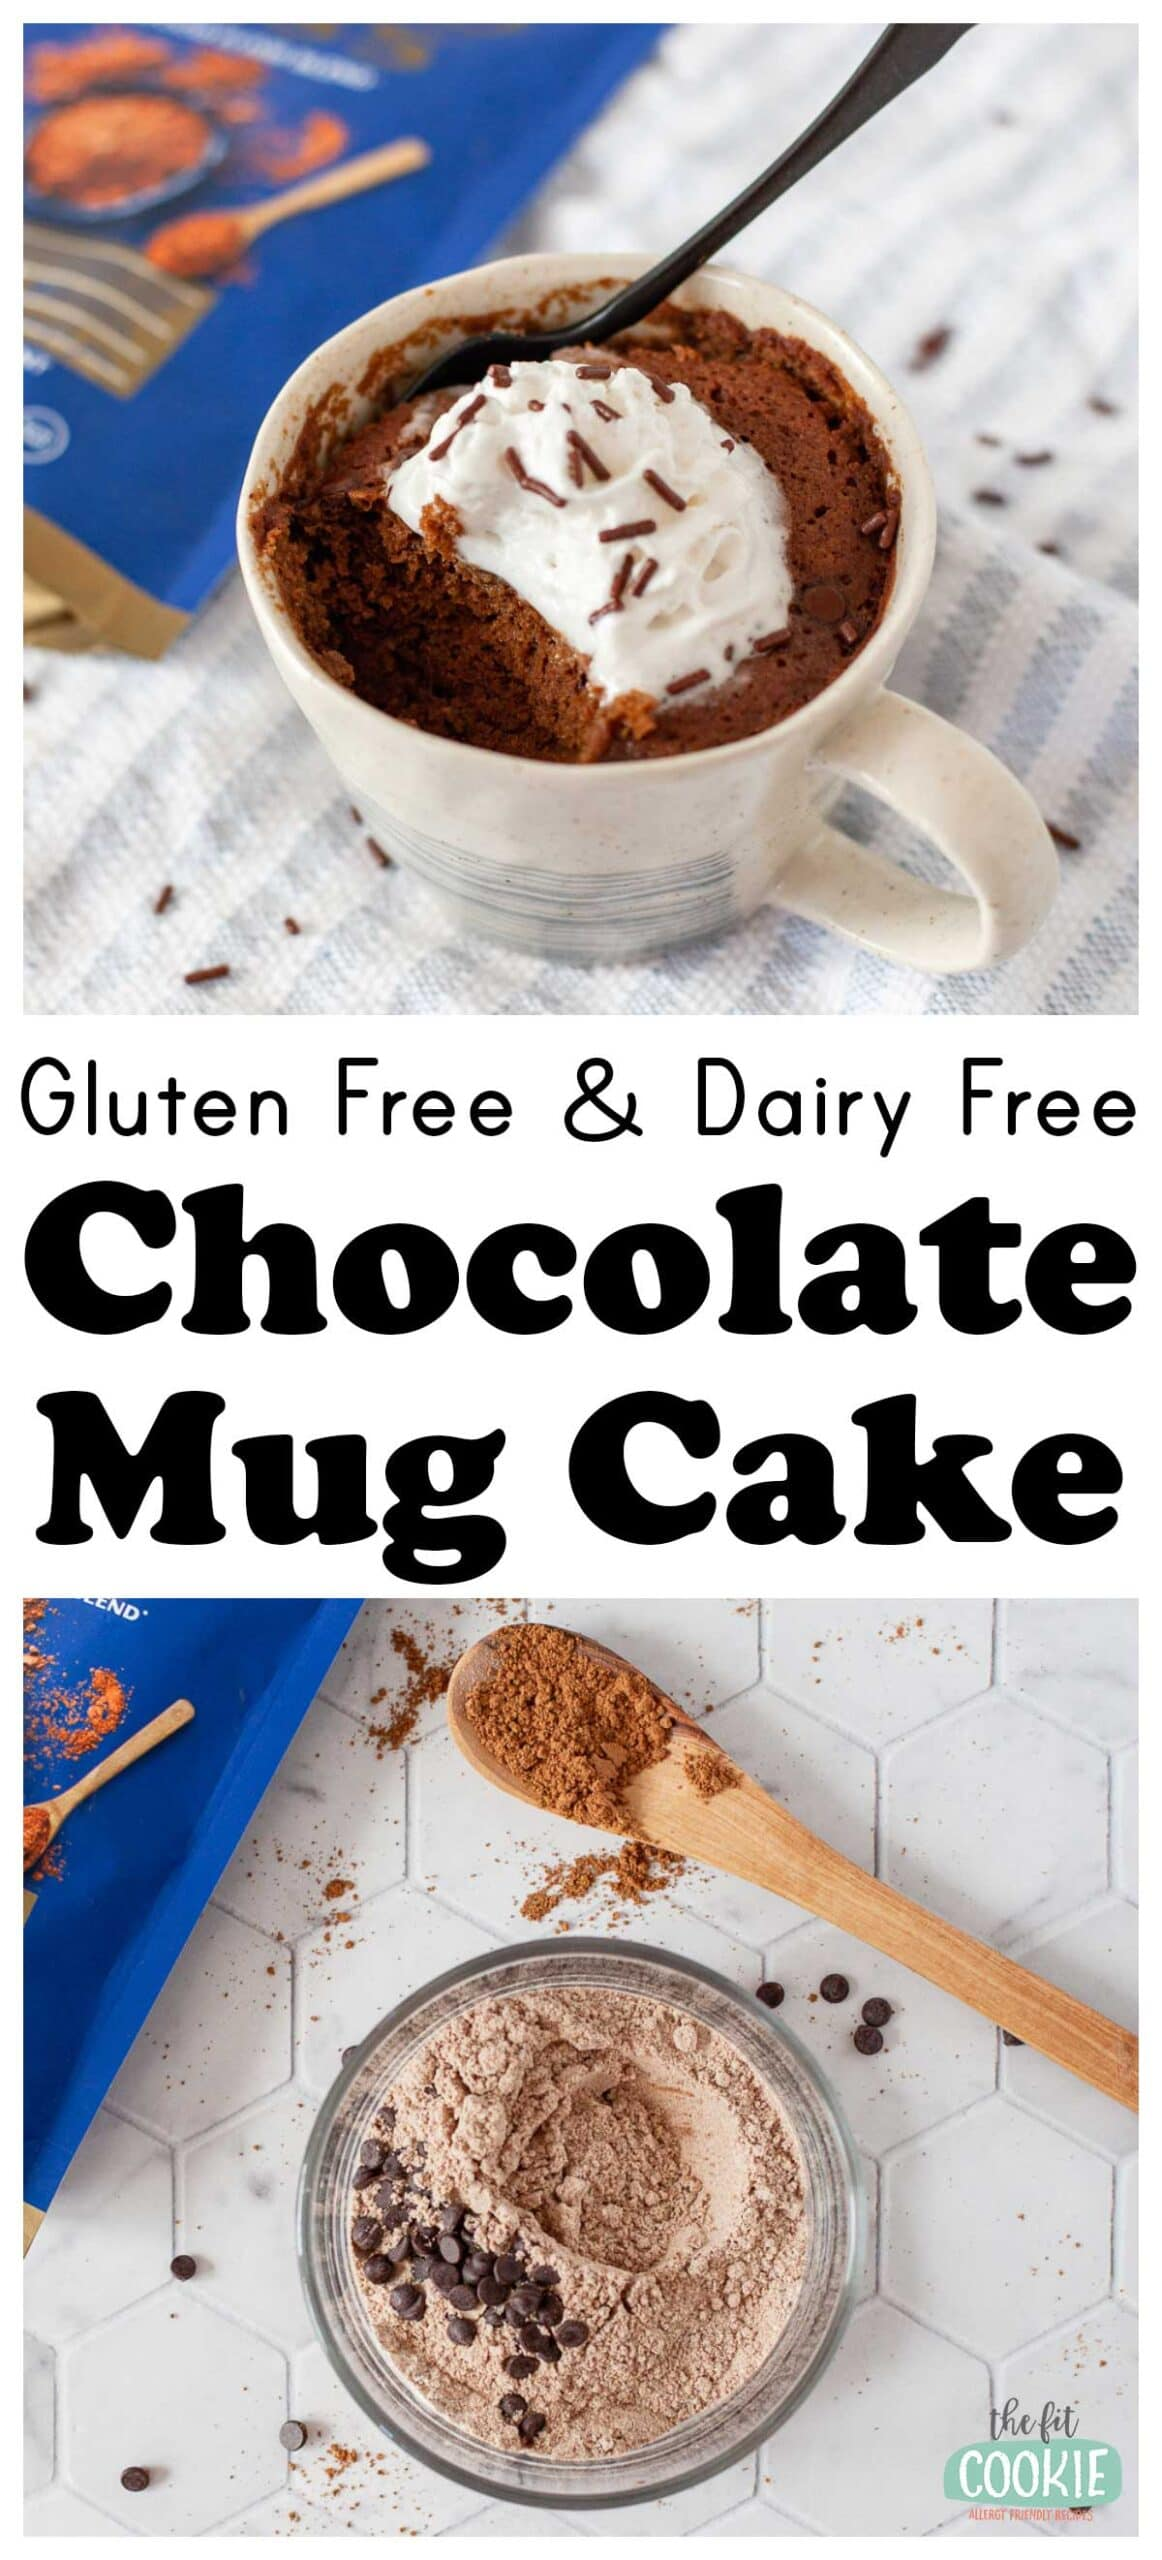 photo collage of chocolate mug cake in a cup with dairy free whipped cream on top